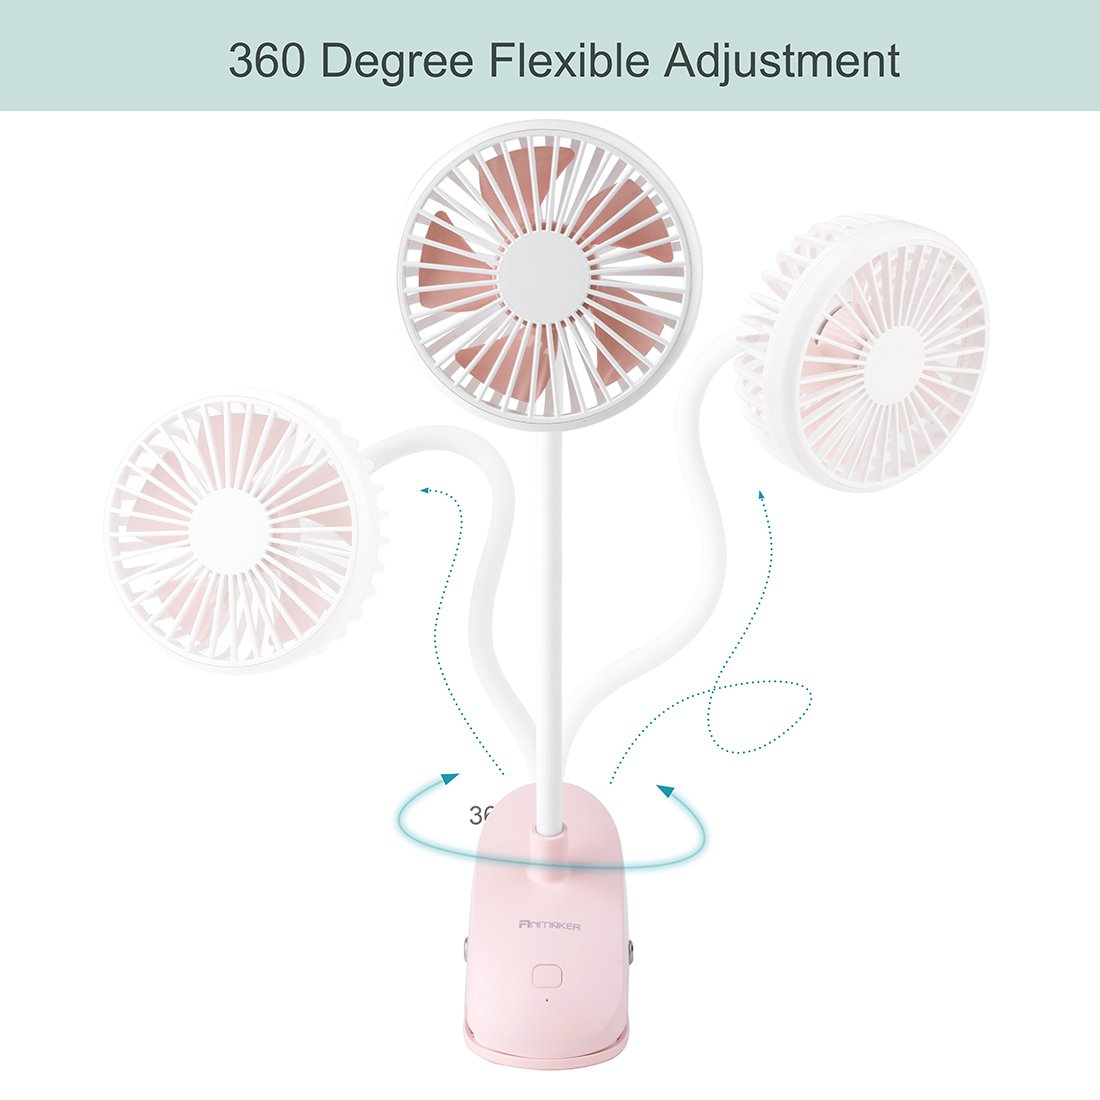 Anmaker Mini Baby Stroller Fan Clip on, 2000mAh Flexible Bent Portable Desk Personal Clip Cooling Fan Electric Pink with USB Charging Battery Operated 3 Speed for Baby,Office, Camping, Bedside, Beach by Anmaker (Image #3)